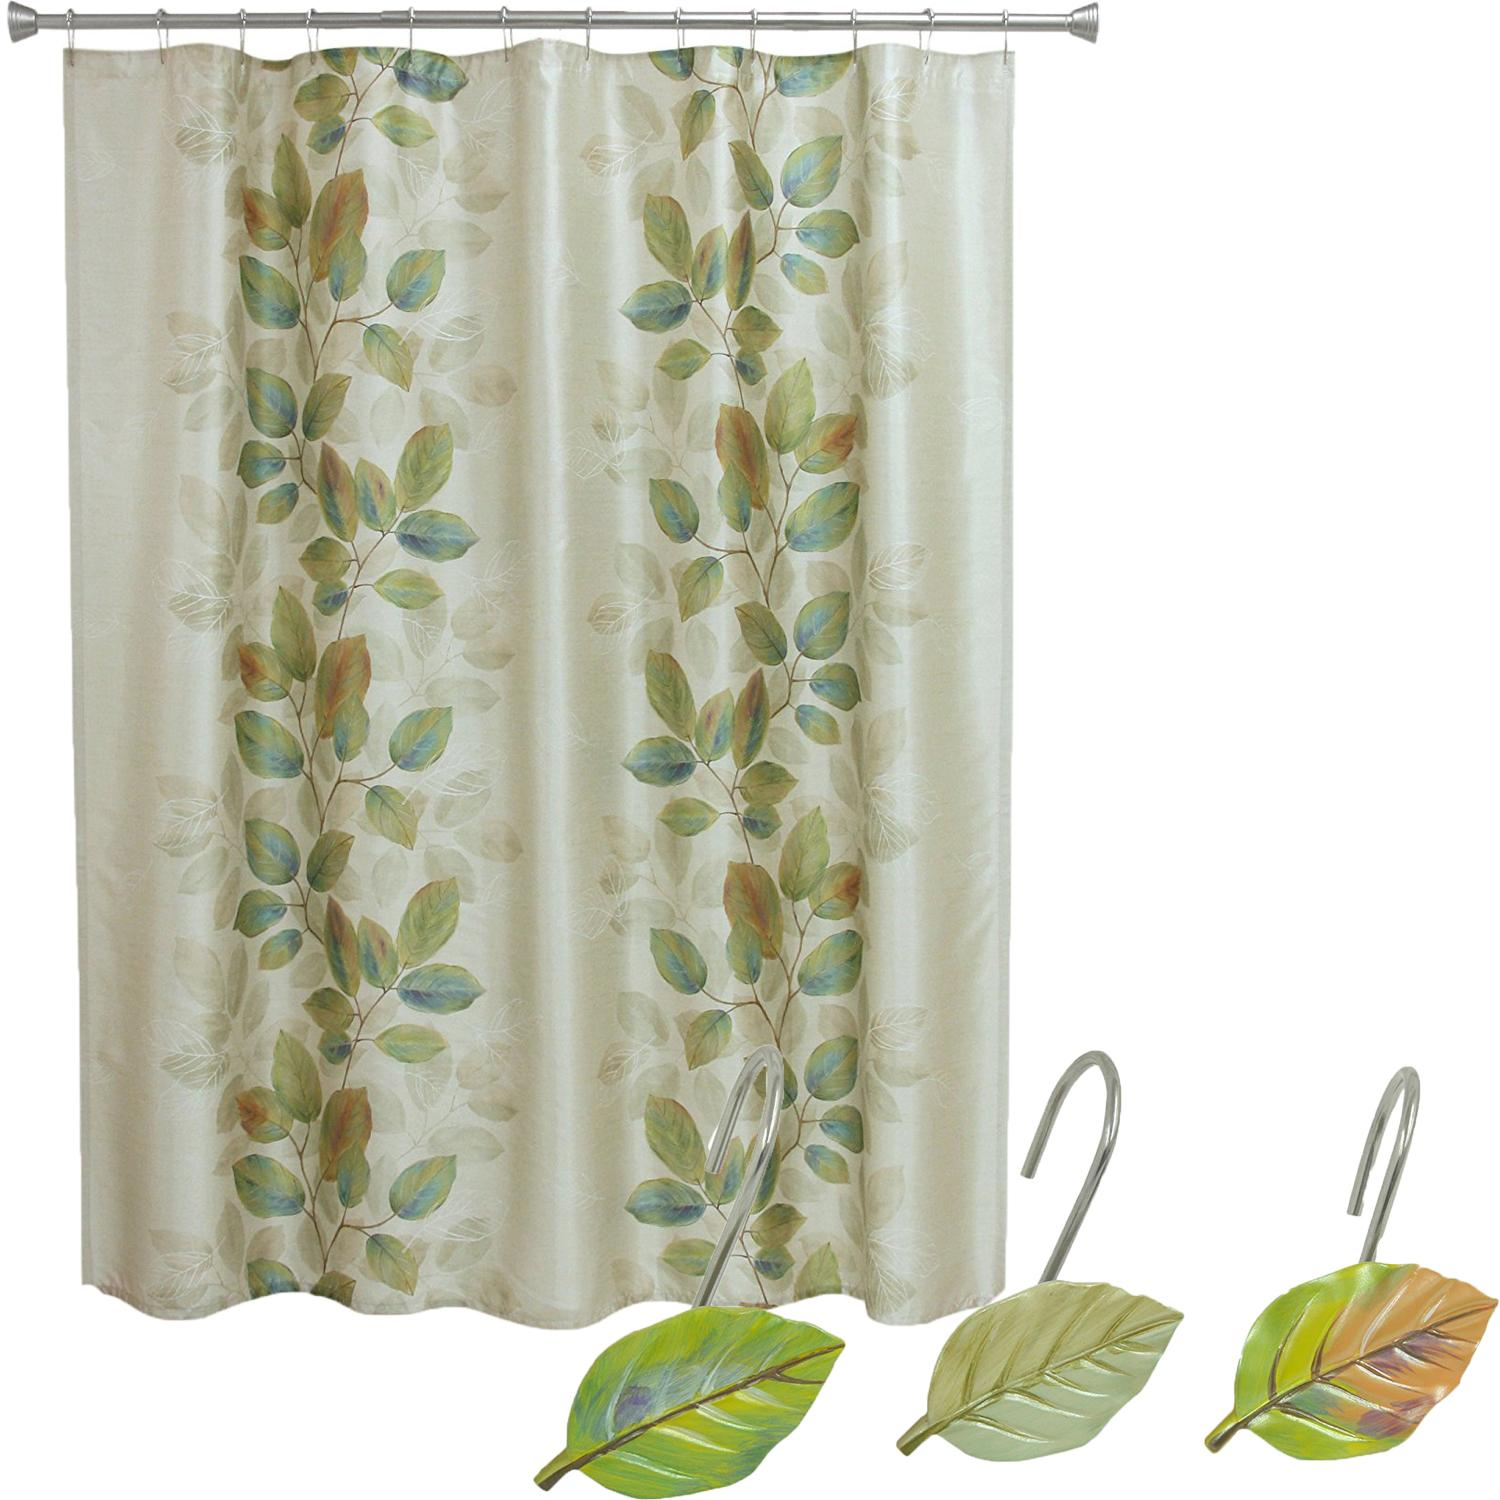 Amazon.com: Bacova Guild Shower Curtain, Waterfalls Leaves: Home ...